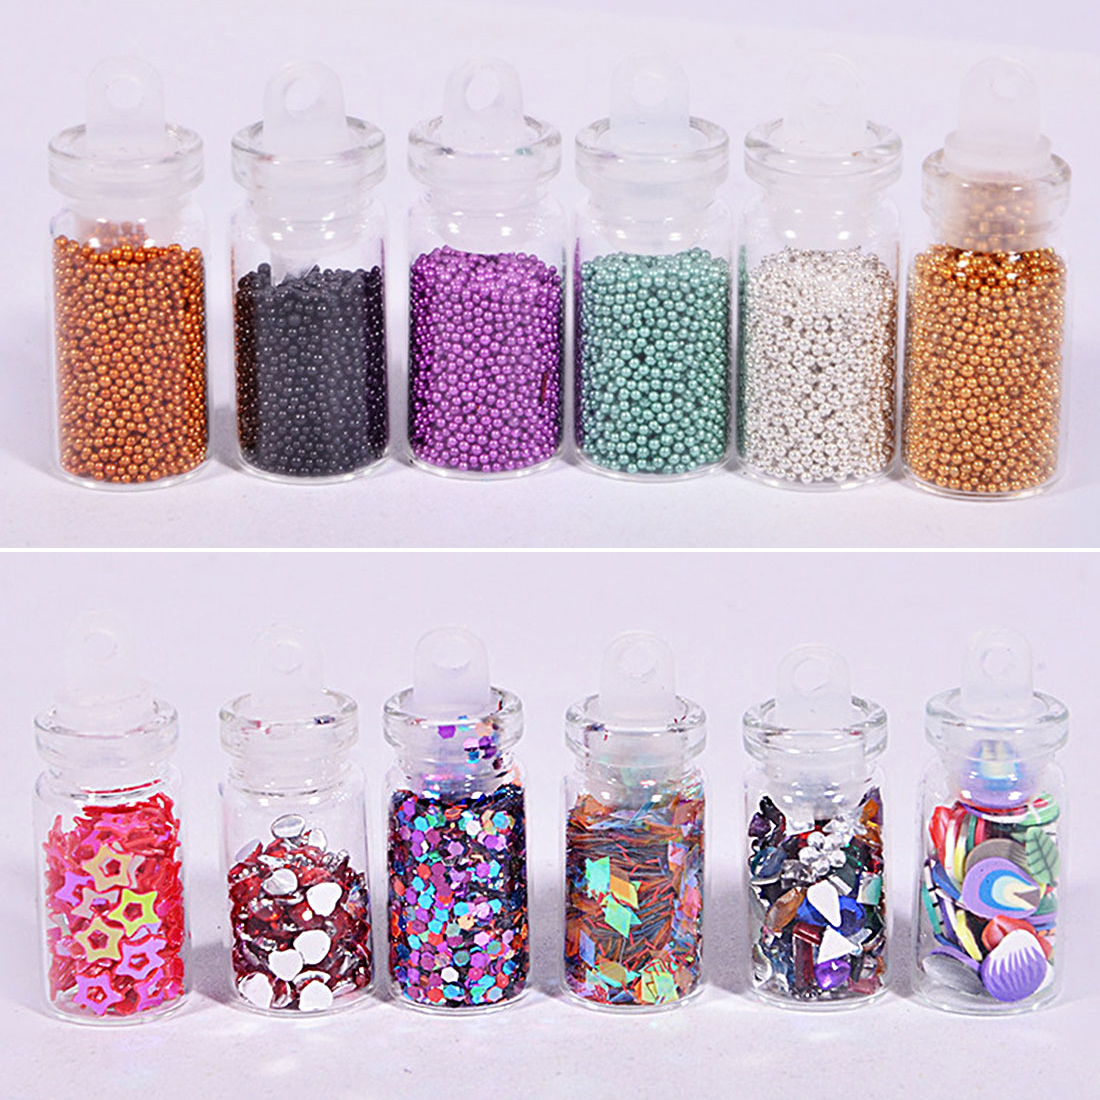 5 Designs Mixed Rhinestones Beads Sequins Paillettes Nail Glitter Powder Acrylic Tips 48 Bottles DIY Nail Art Decoration Kit 24 bottles 3d colorful shiny nail glitter powder sequins manicure festival nail art decorations for women